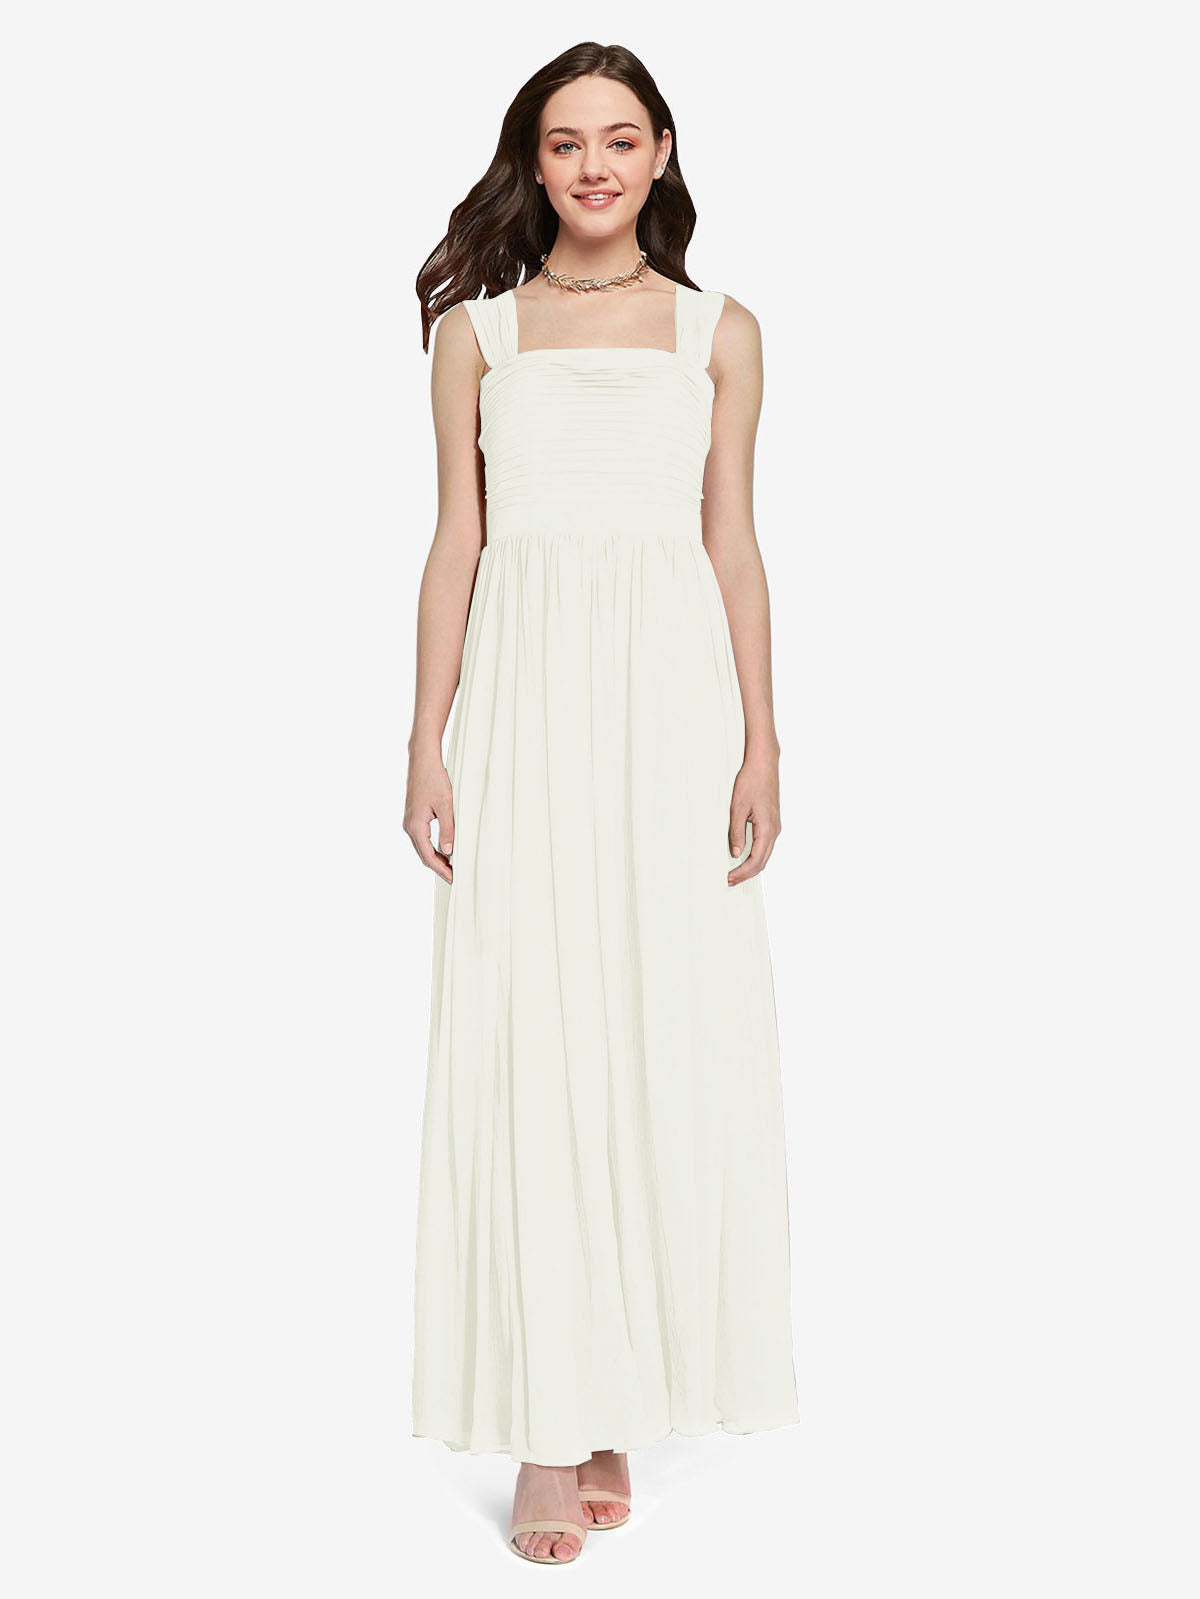 Long A-Line Square Sleeveless Ivory Chiffon Bridesmaid Dress Aldridge